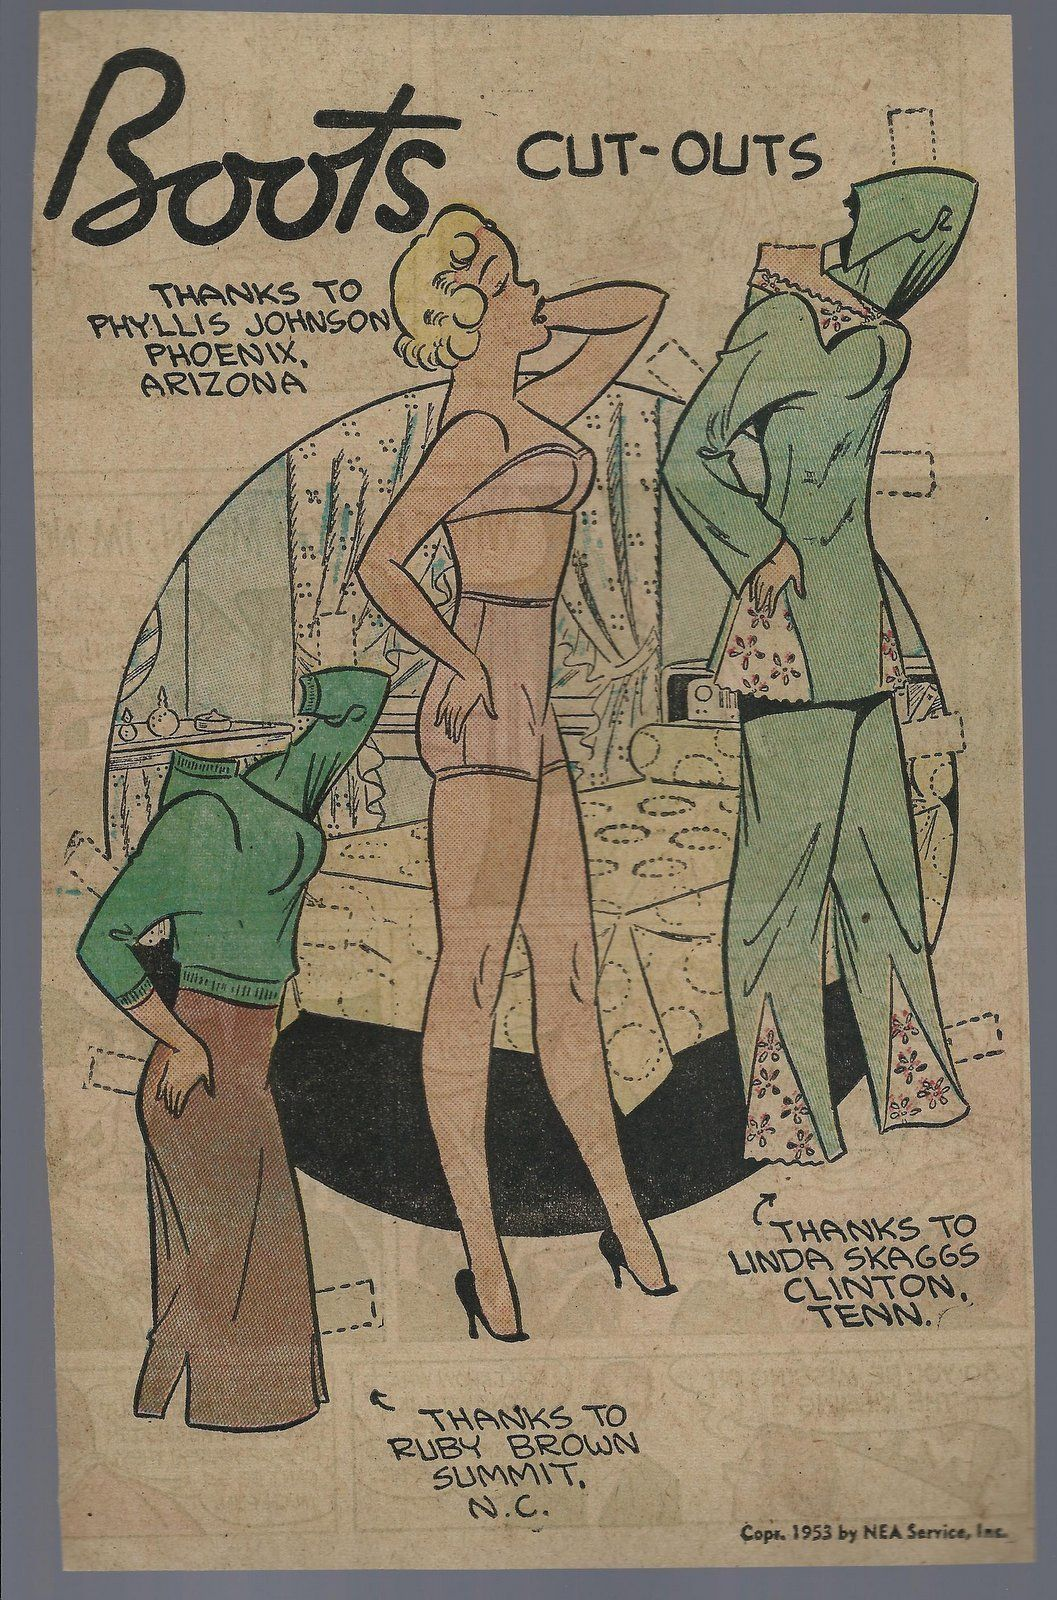 9-6-53 Boots paper doll / eBay